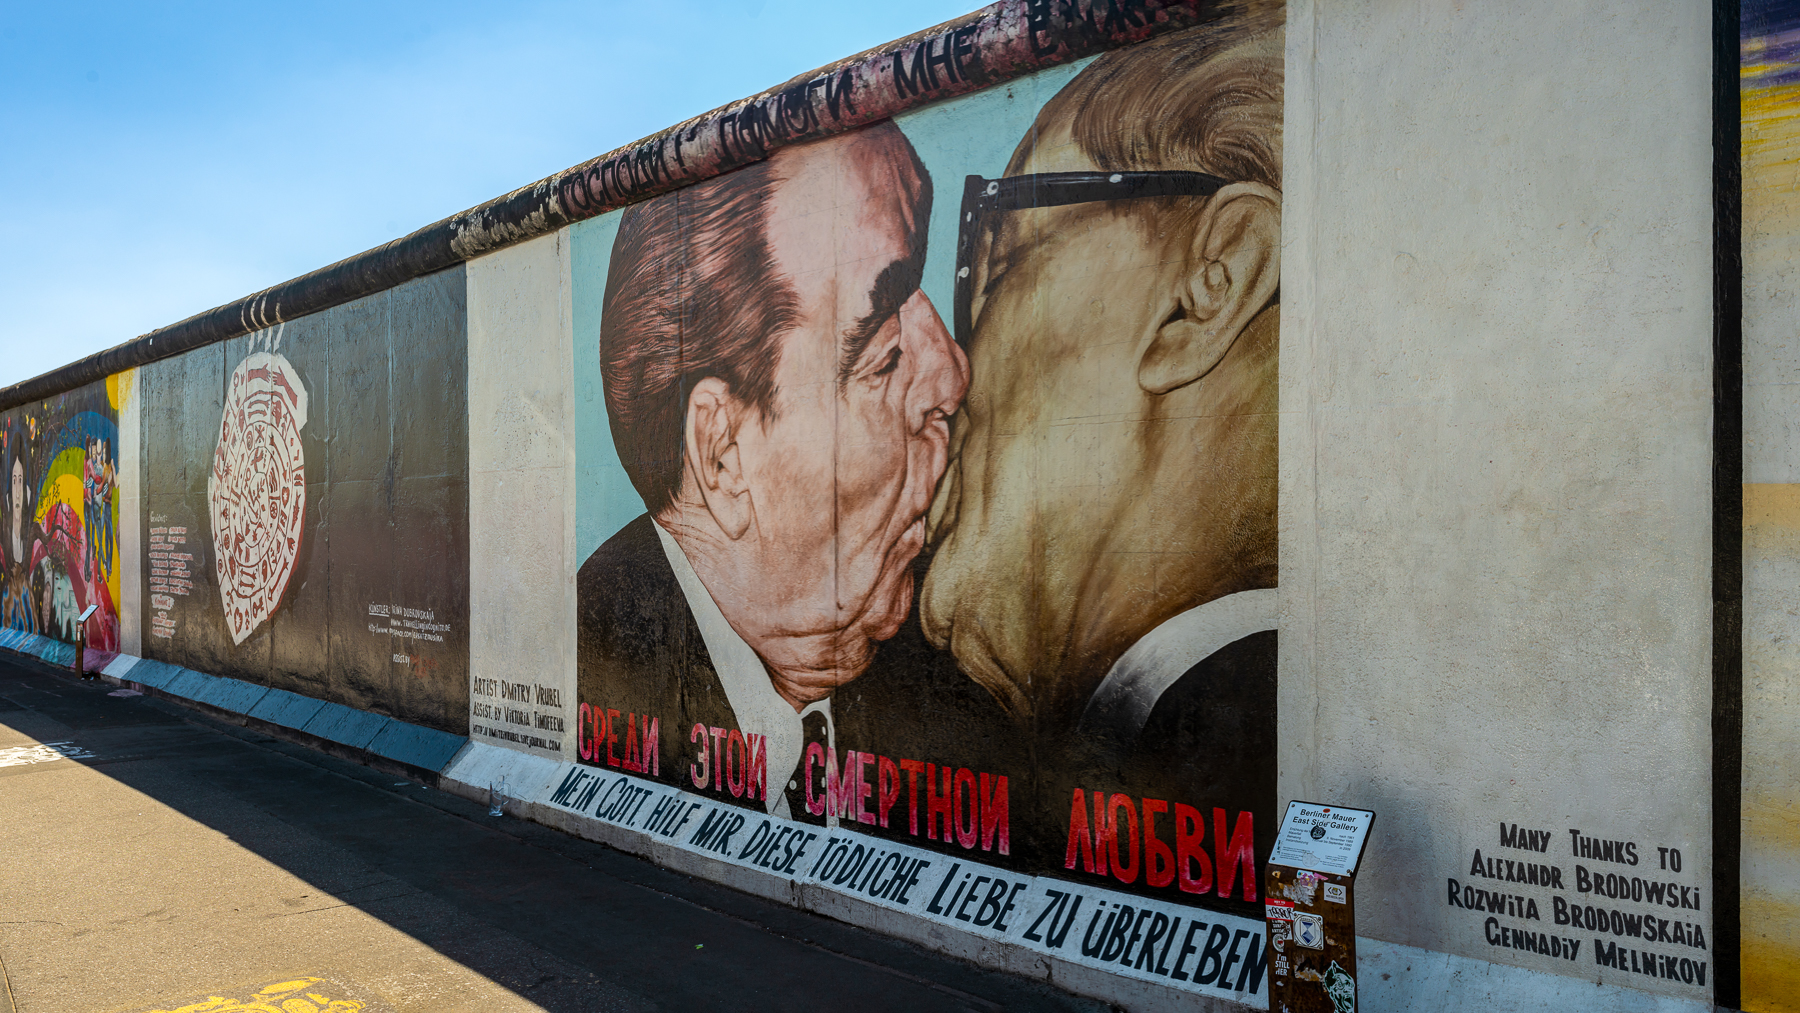 East Side Gallery, Berlin. © Mike Best